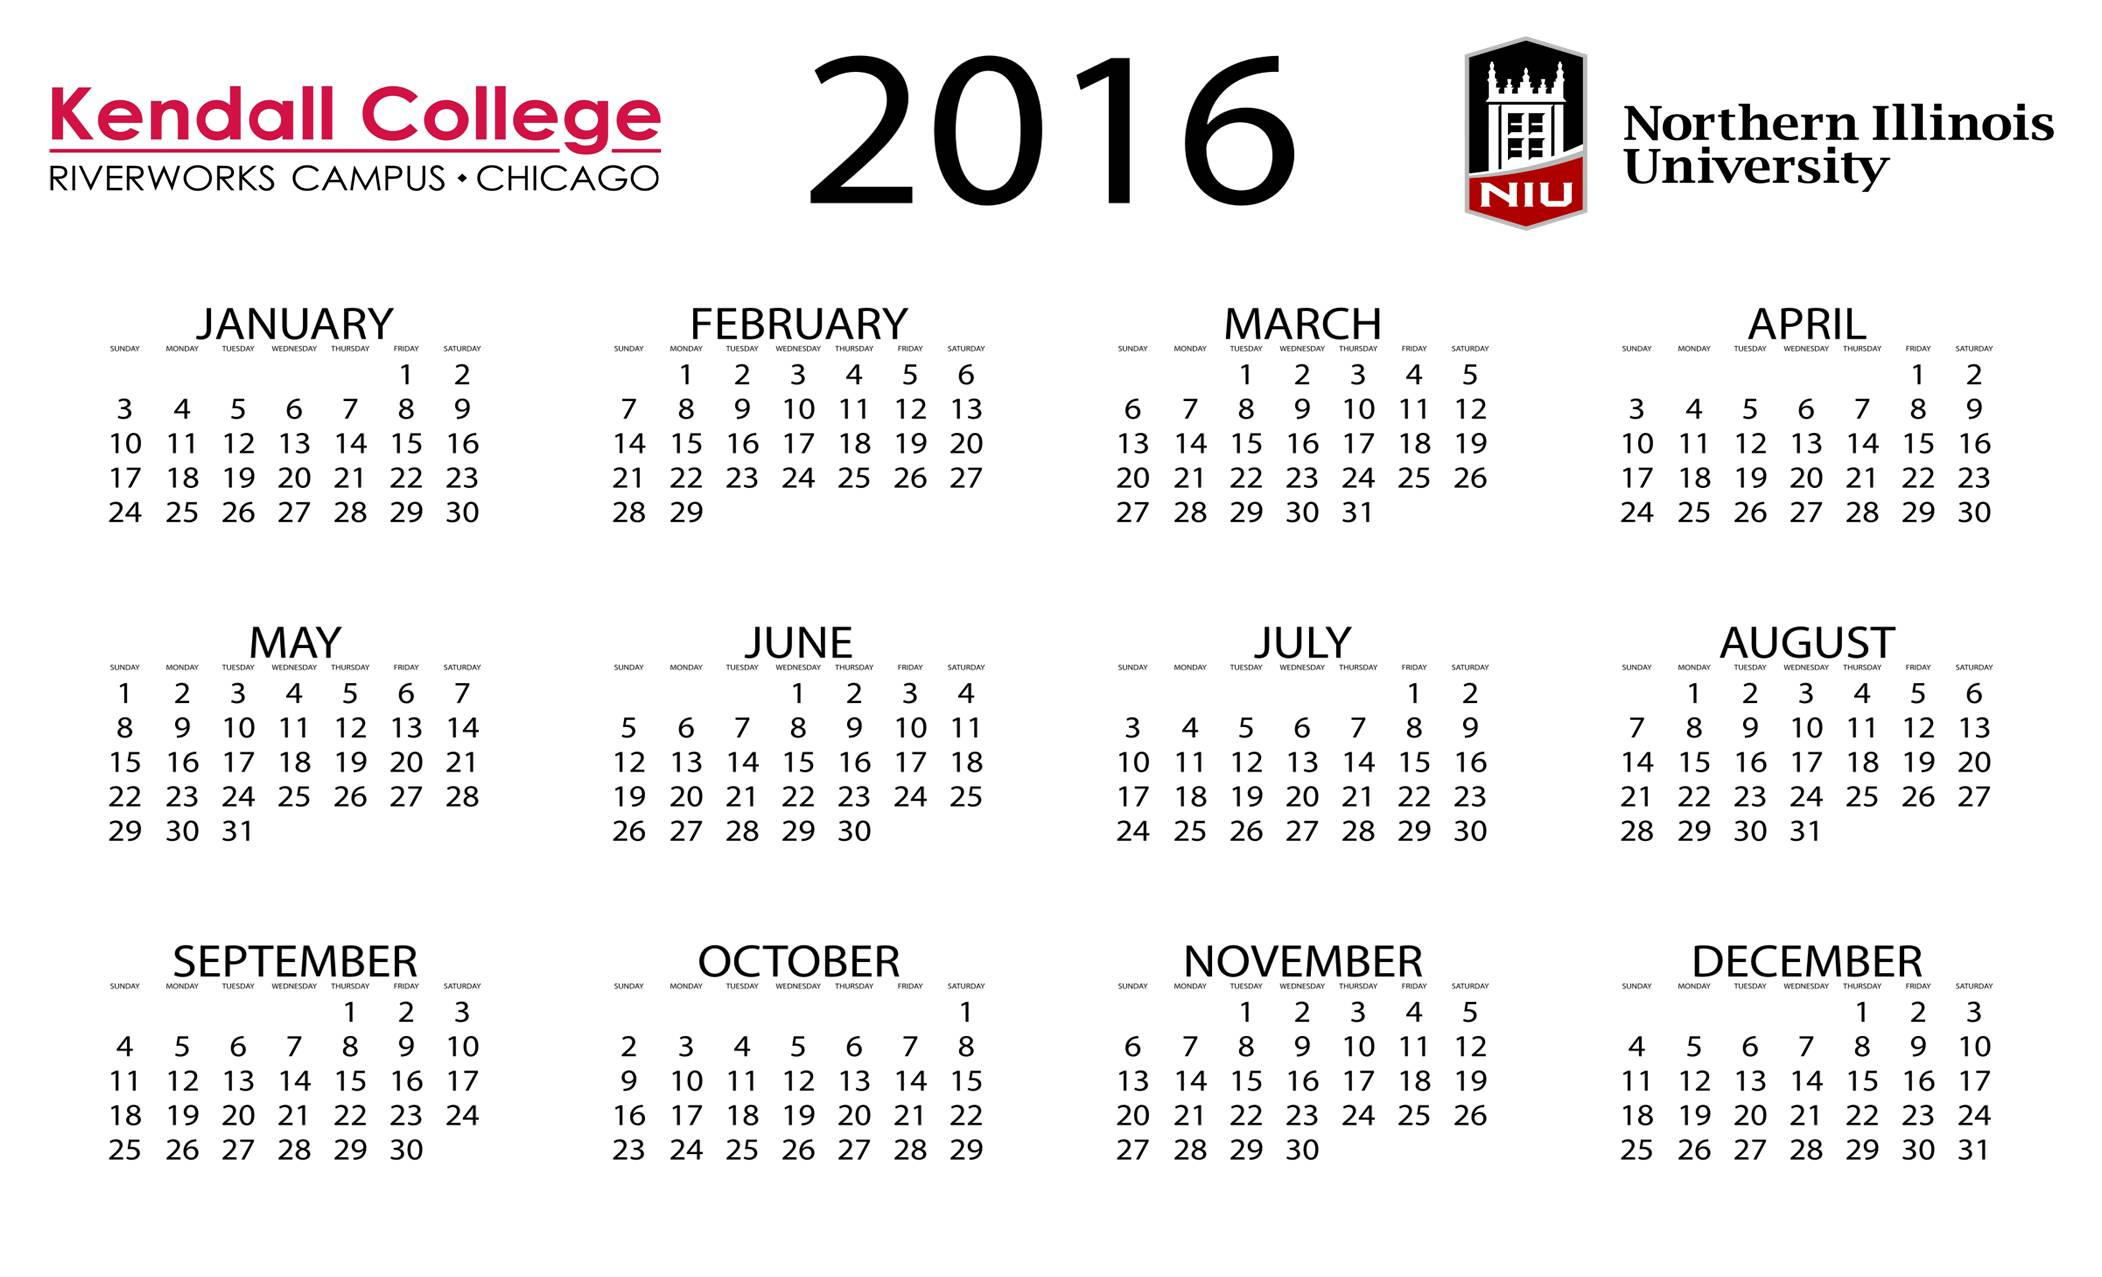 2016 Class Schedule w/ 2 new locations